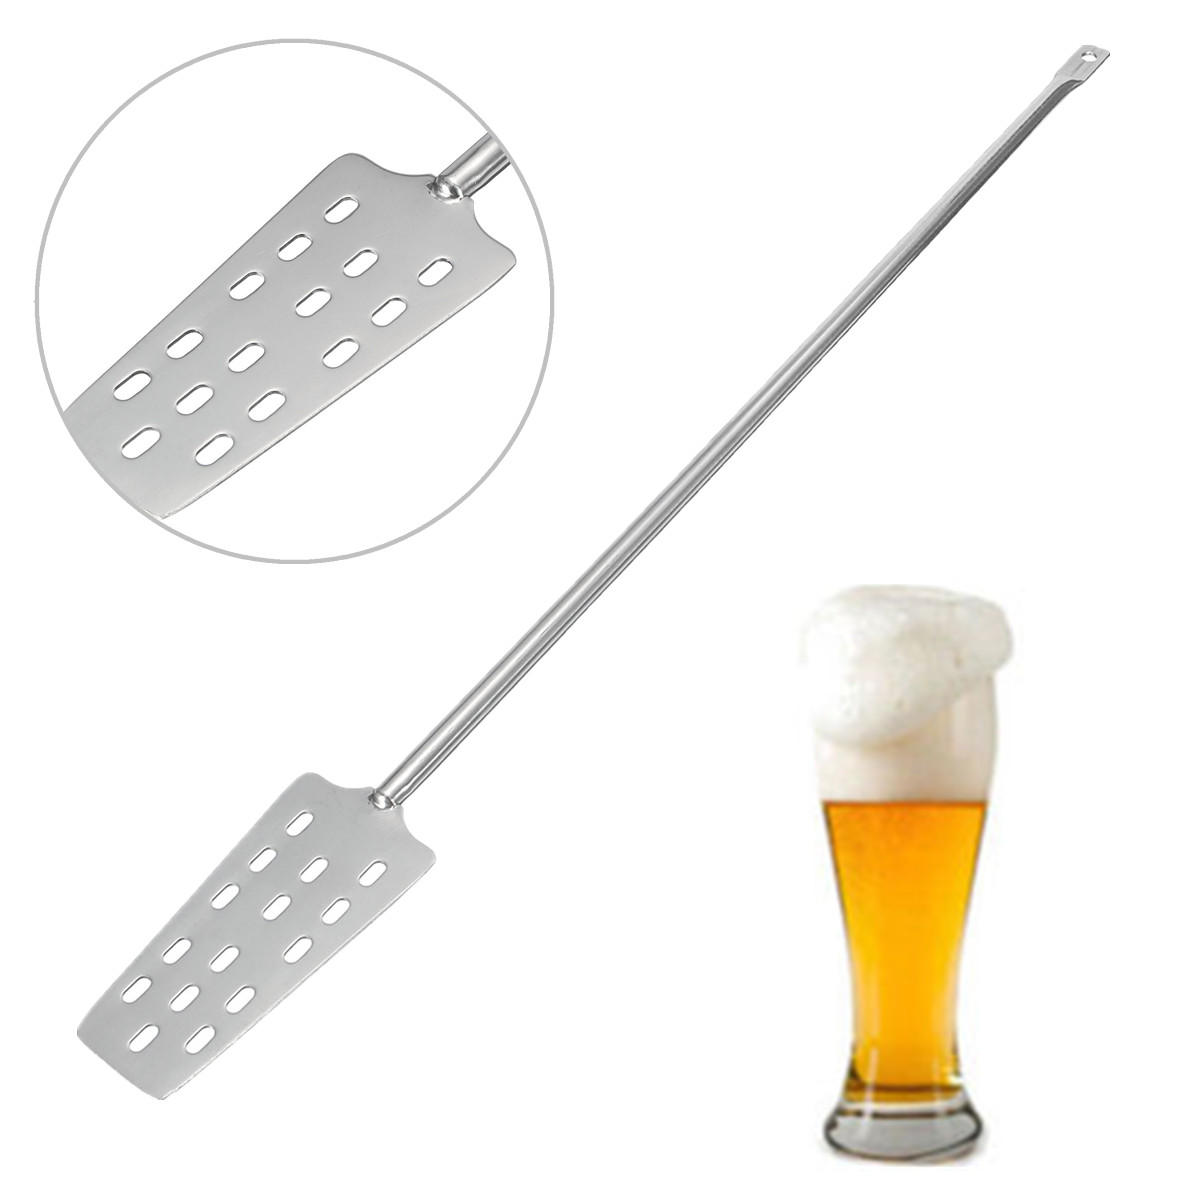 Mixing Tools 316 Stainless Steel Wine Mash Tun Mixing Stirrer Paddle Homebrew With 15 Holes Wine Making Tools